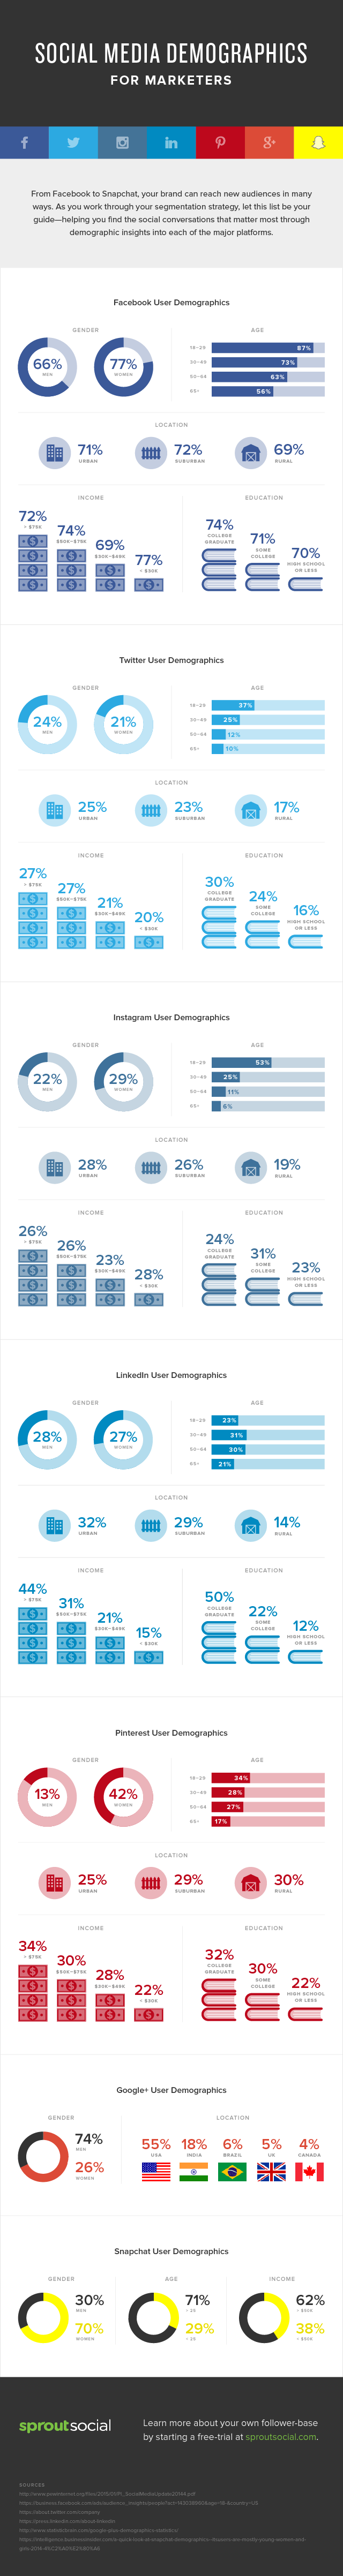 Facebook, Twitter, GooglePlus, Instagram, LinkedIn, Pinterest and Snapchat - #SocialMedia Demographics for Marketers - #infographic